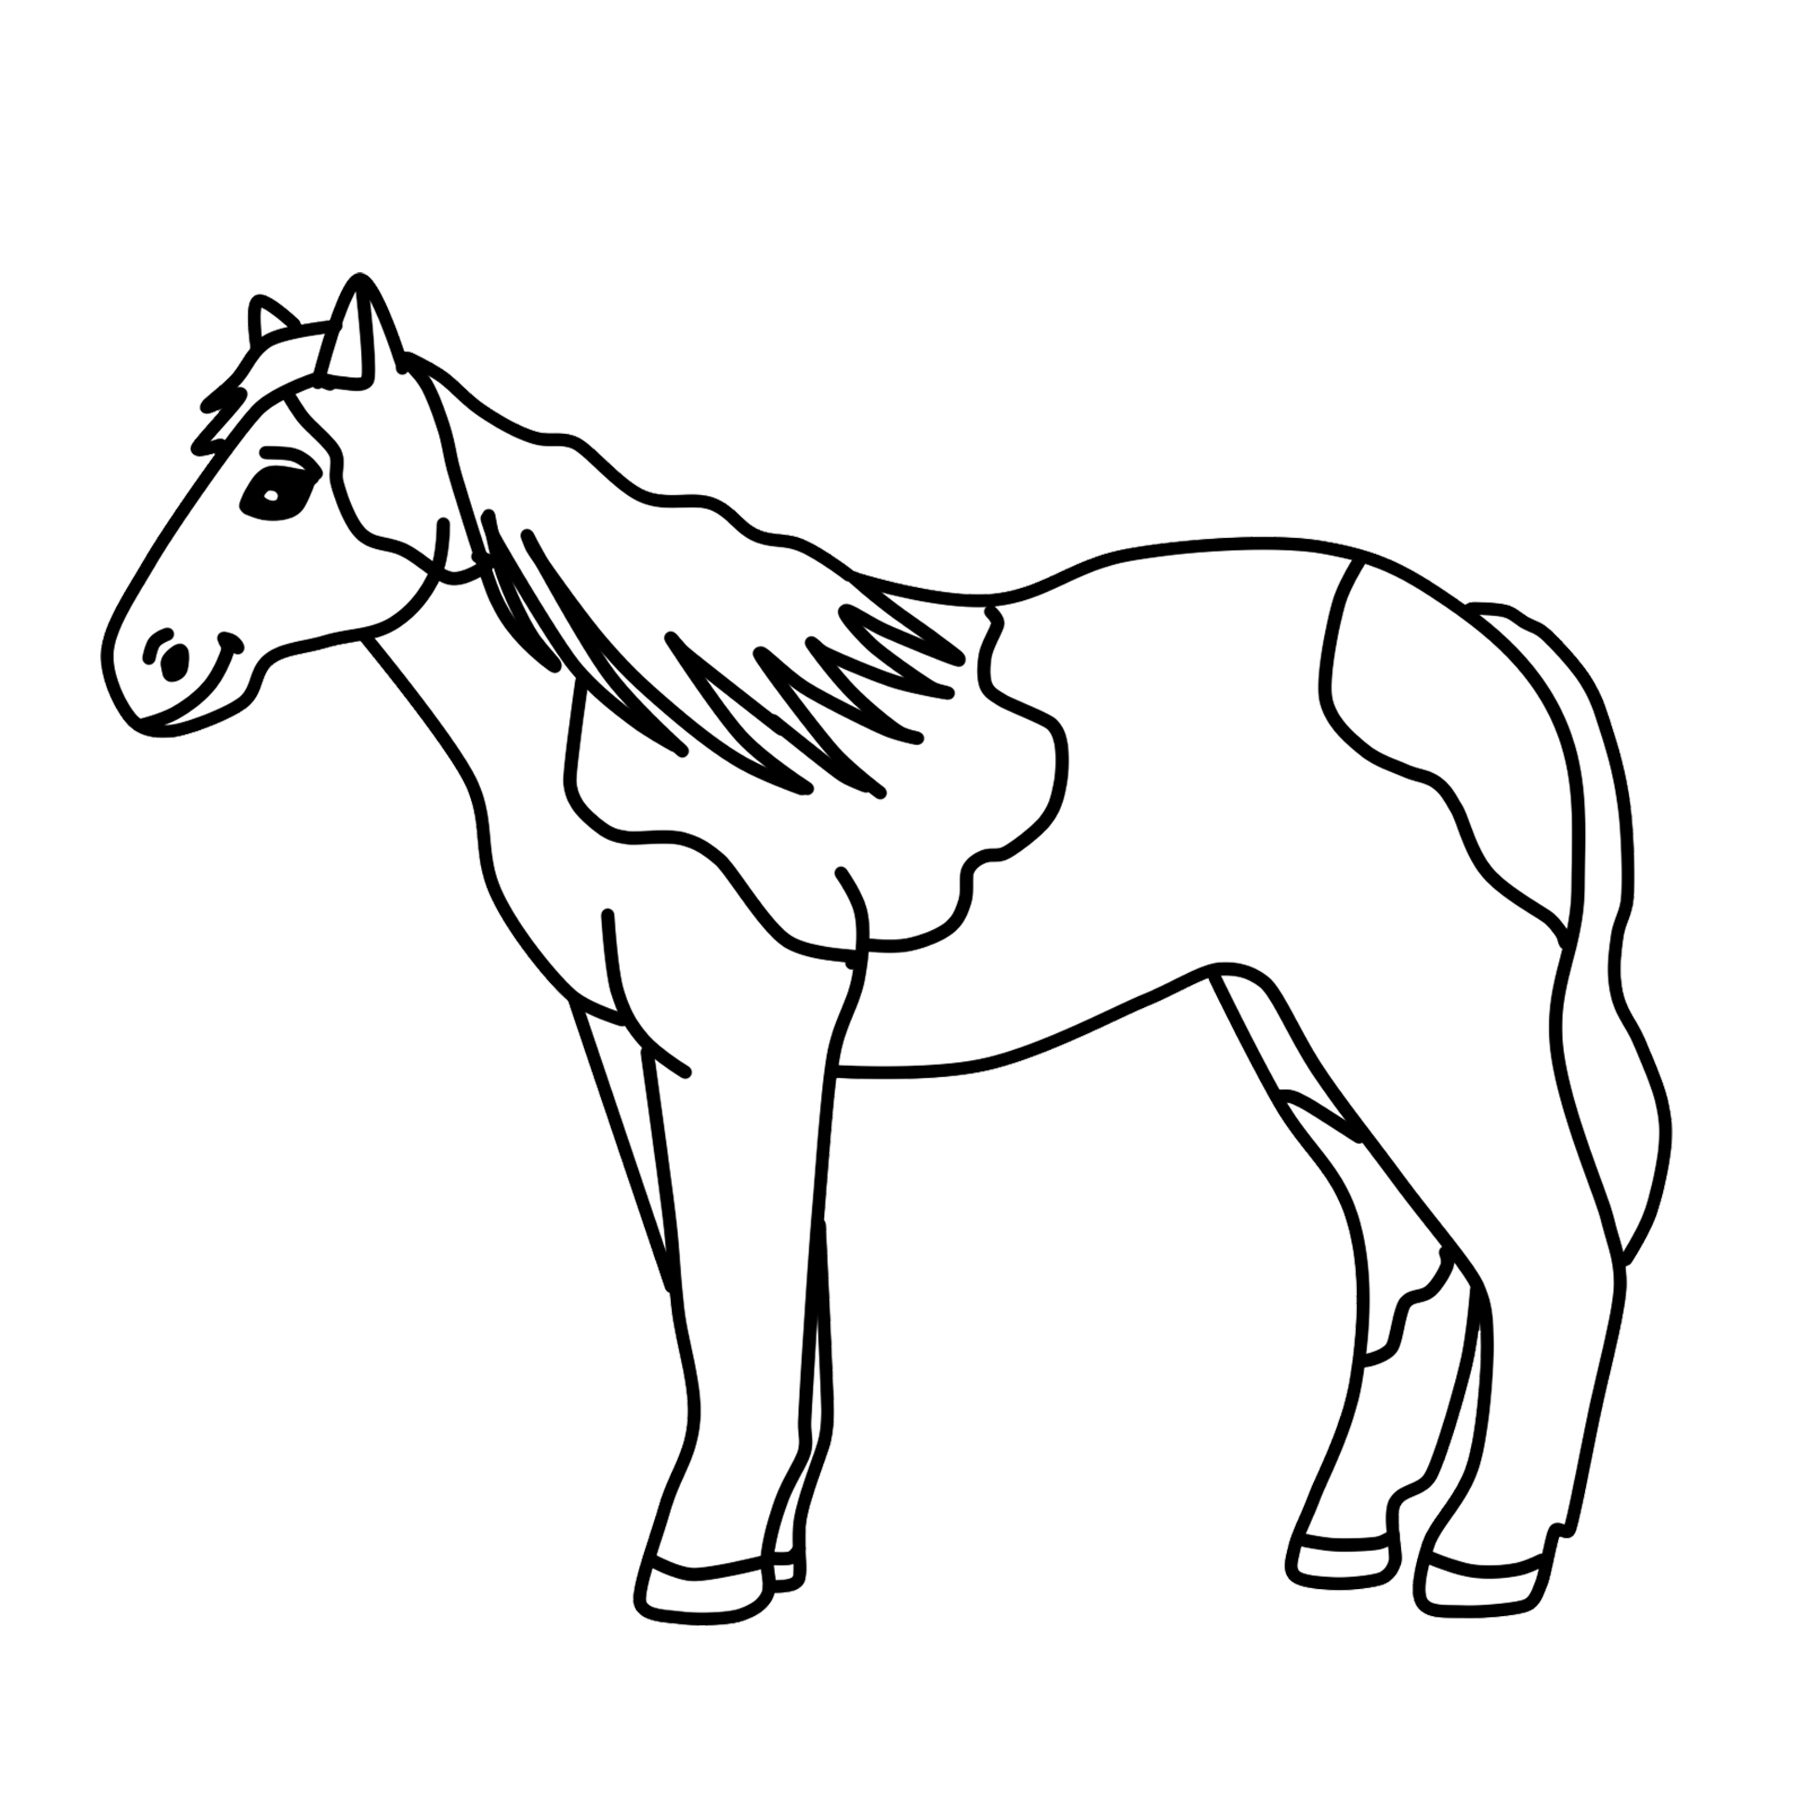 White horse black horse clipart vector freeuse stock Horse Drawing Black And White | Free download best Horse ... vector freeuse stock